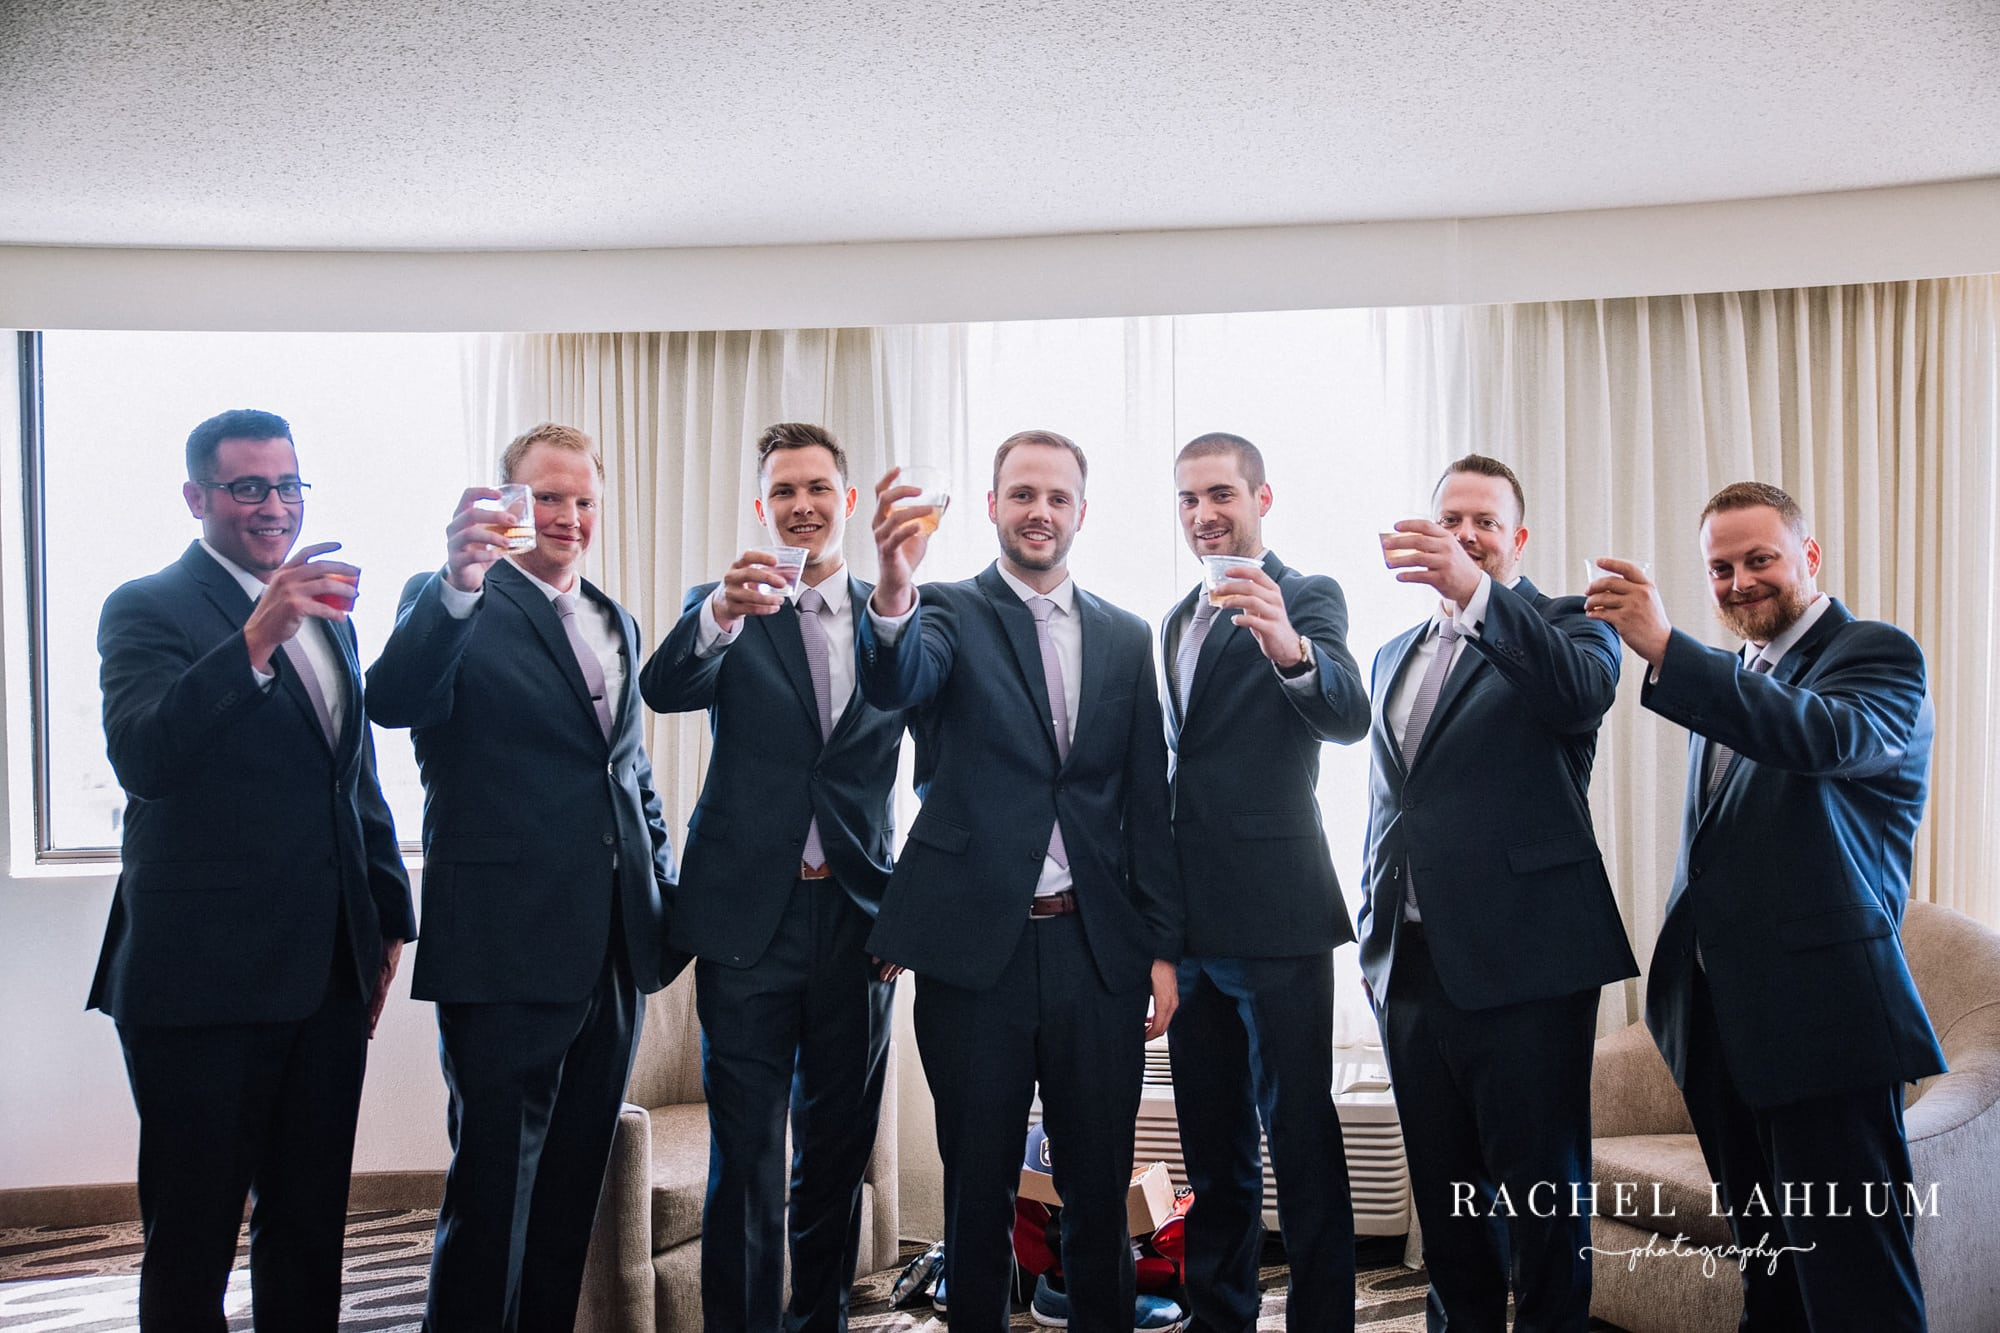 Groom surrounded by groomsmen making a toast with whiskey glasses.